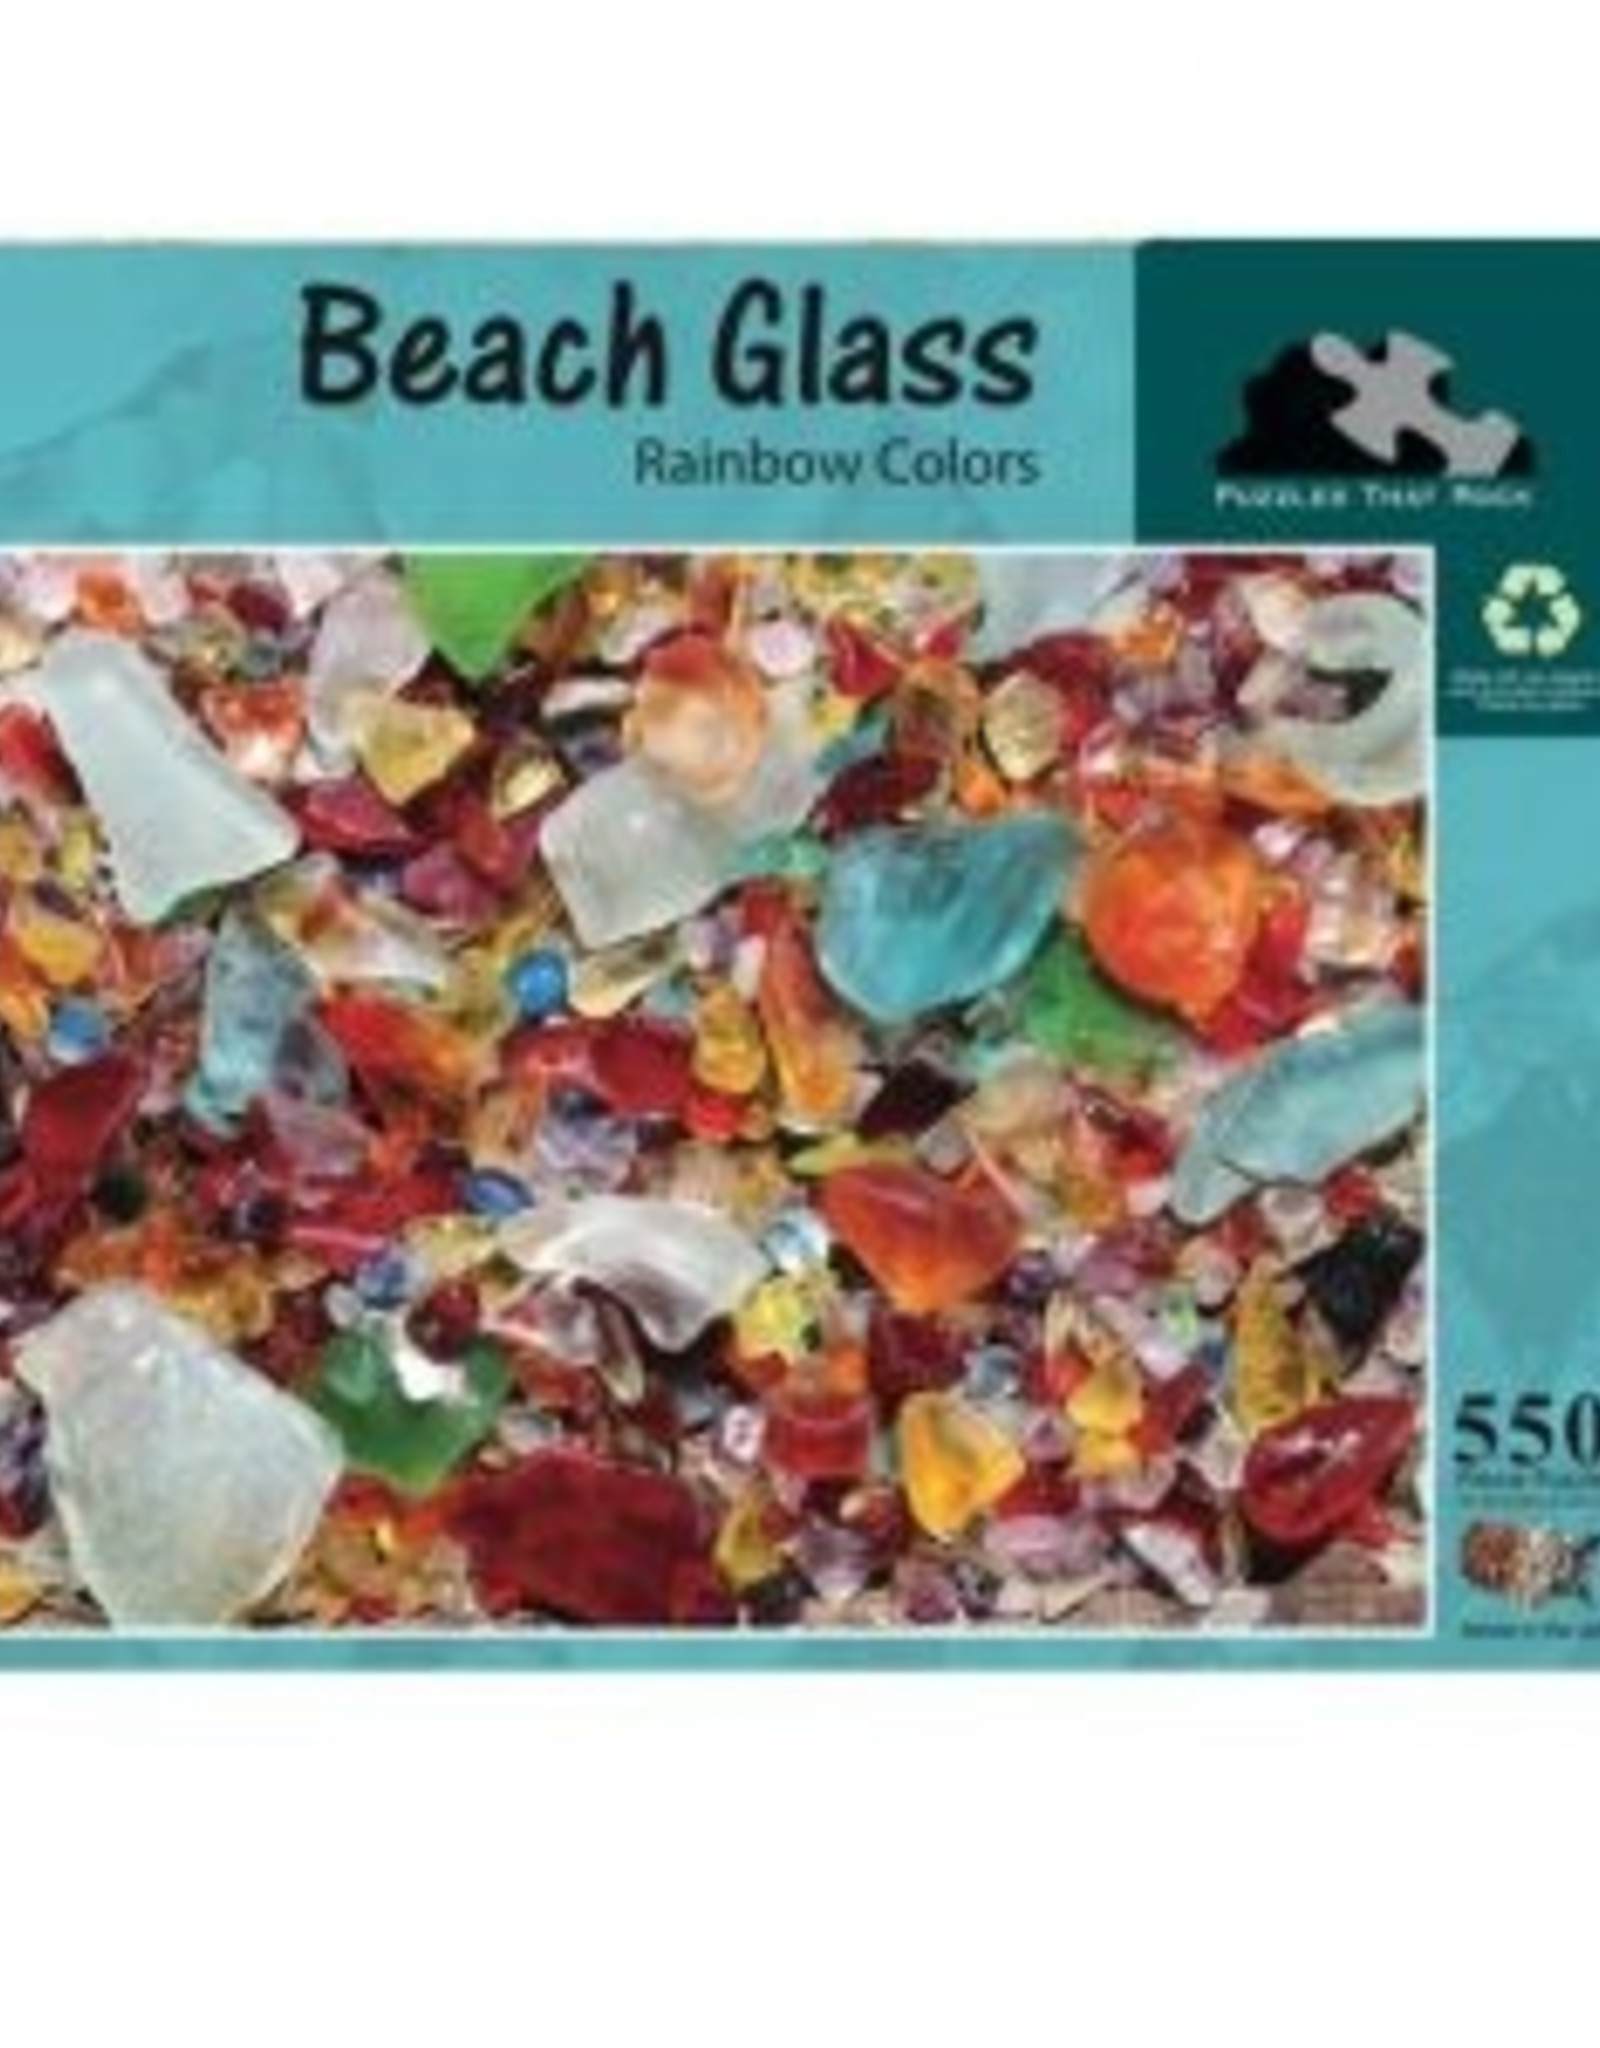 Puzzles That Rock Puzzle, Beach Glass Rainbow Colors